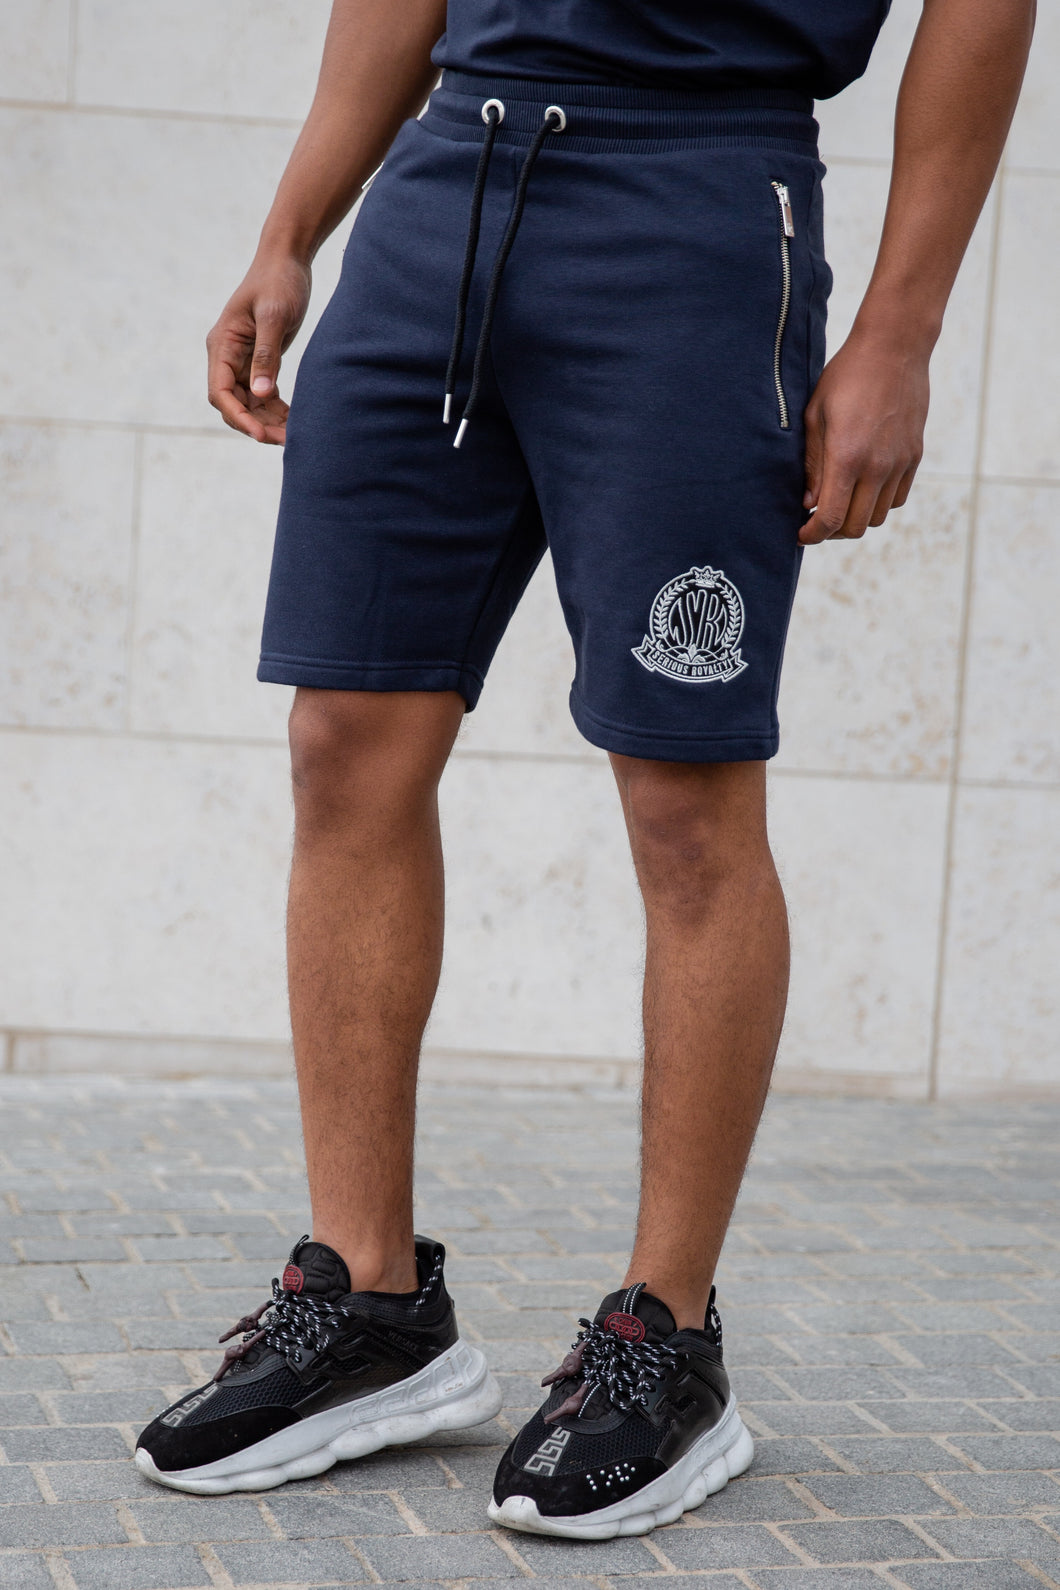 Navy Signature Shorts With Evolved Badge - Serious Royalty